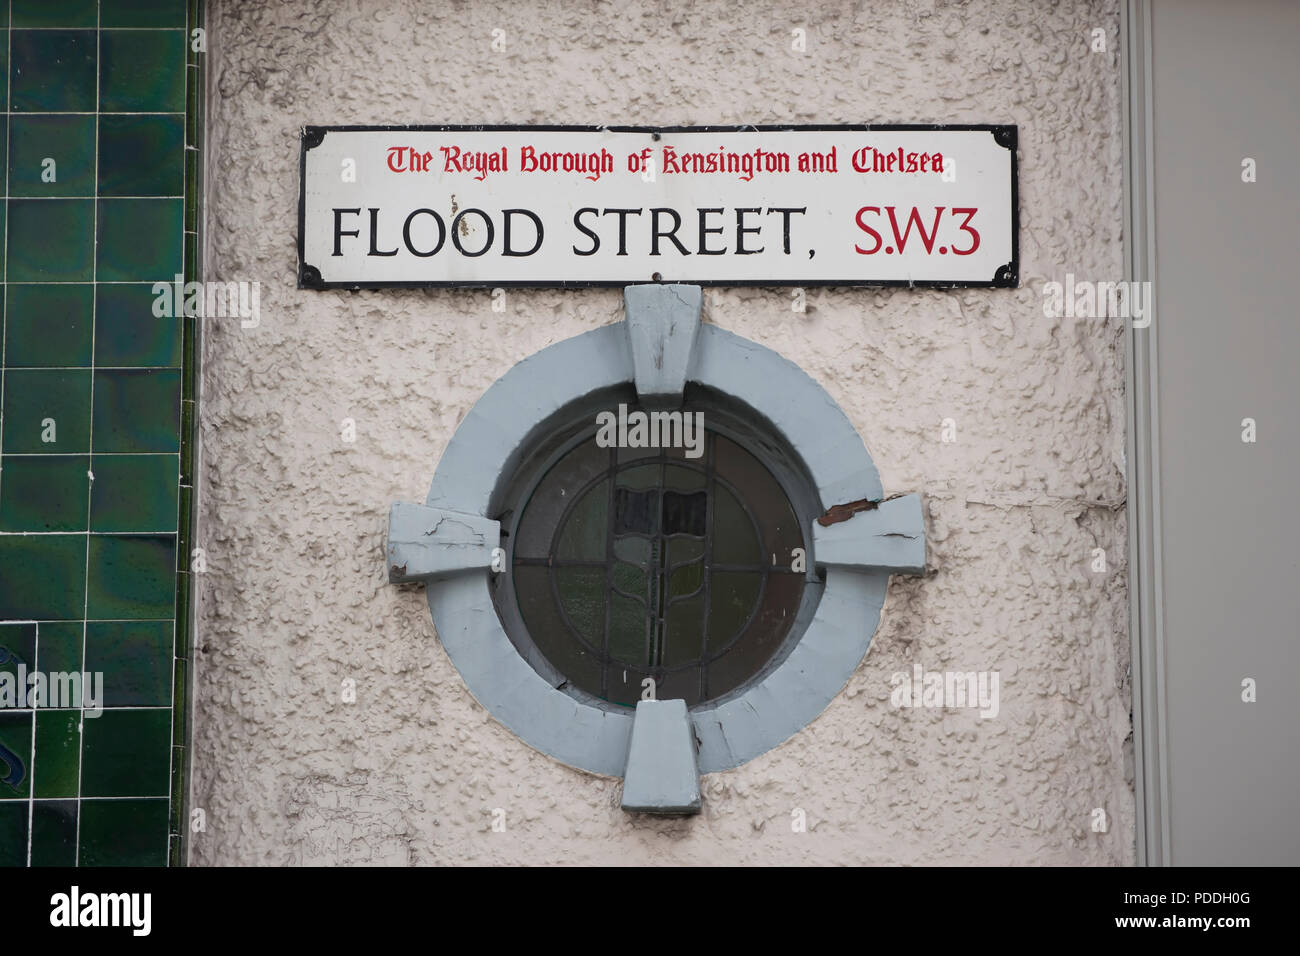 street name sign for flood street, chelsea, london, england, above a porthole window - Stock Image